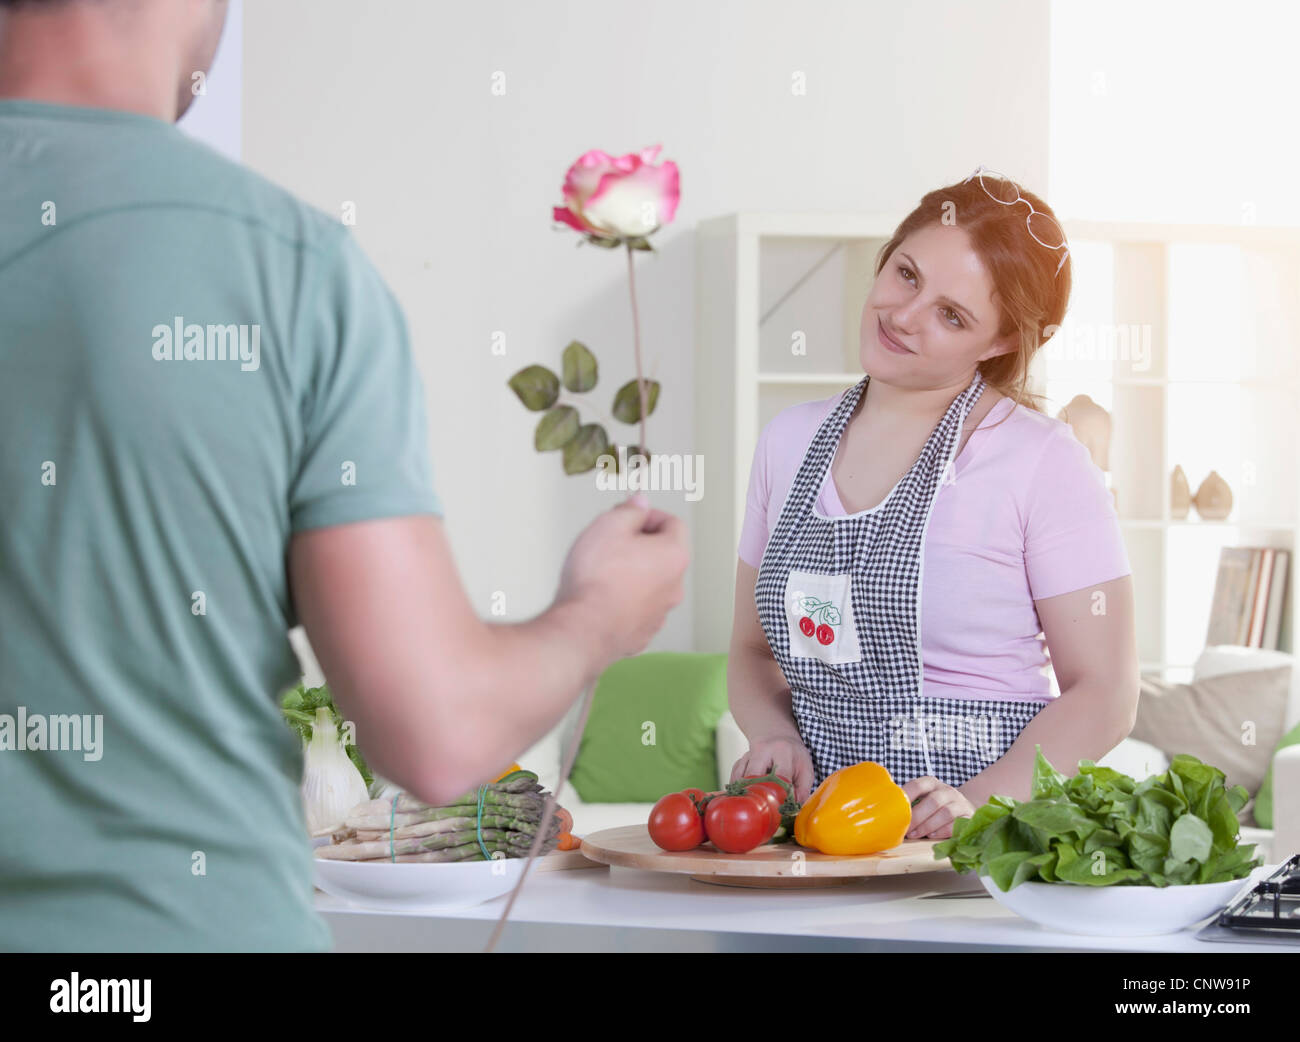 Man giving rose to cooking girlfriend - Stock Image